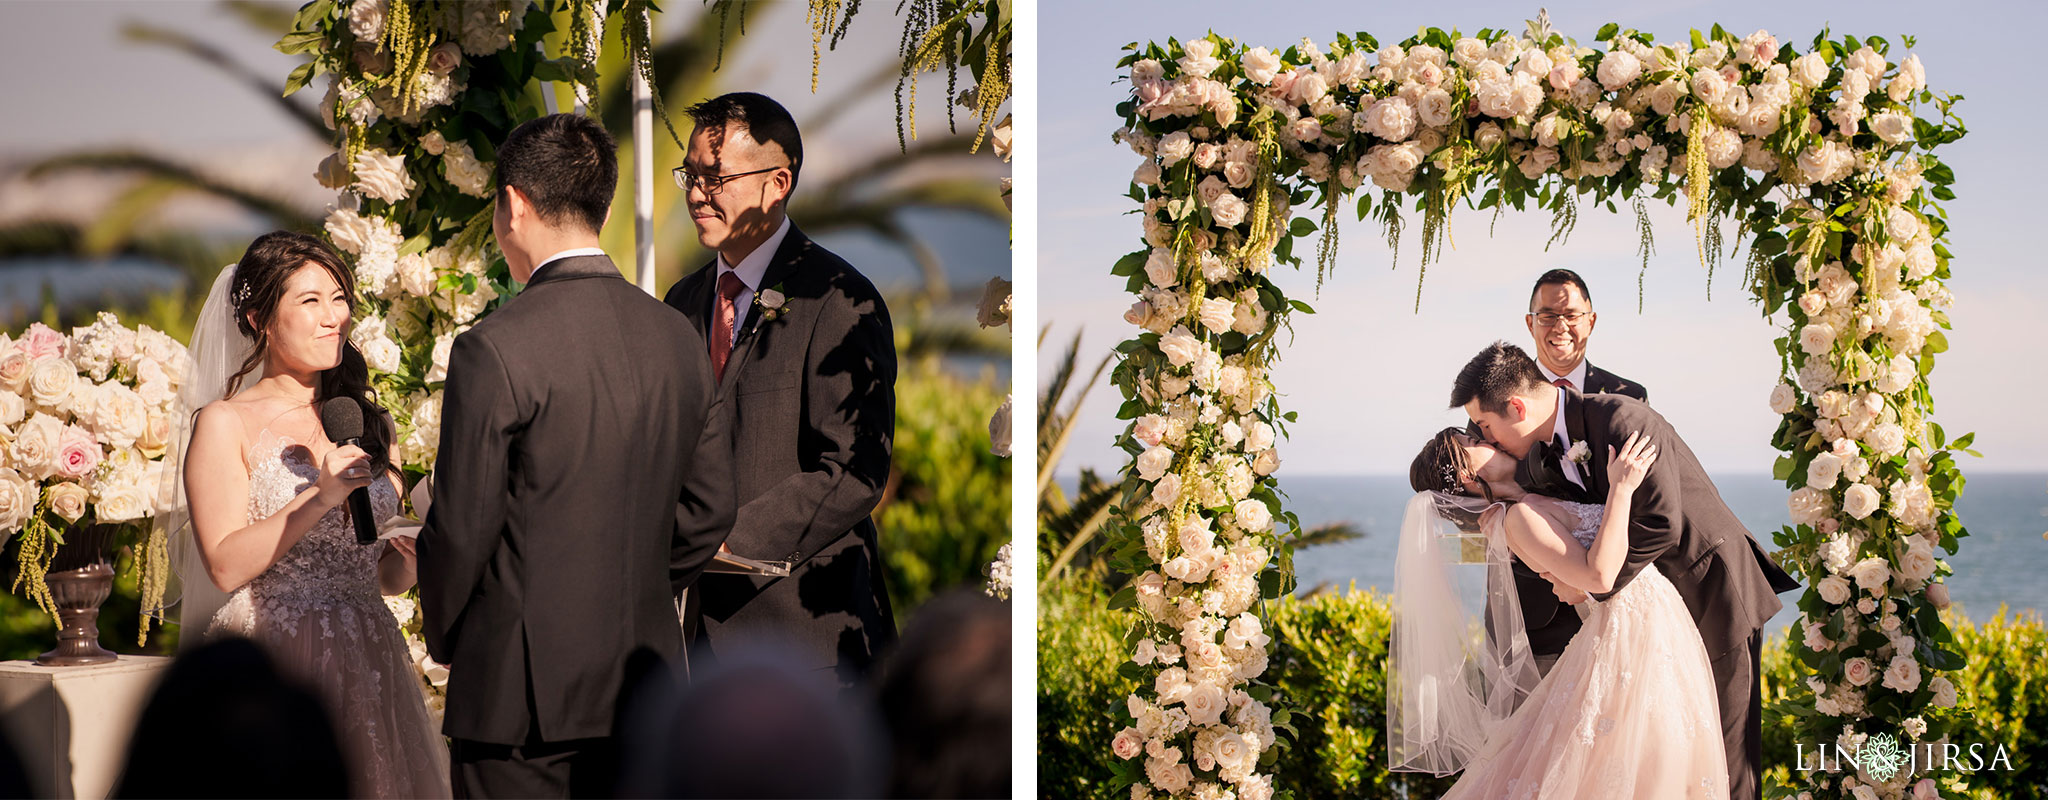 28 bel air bay club malibu wedding ceremony photography